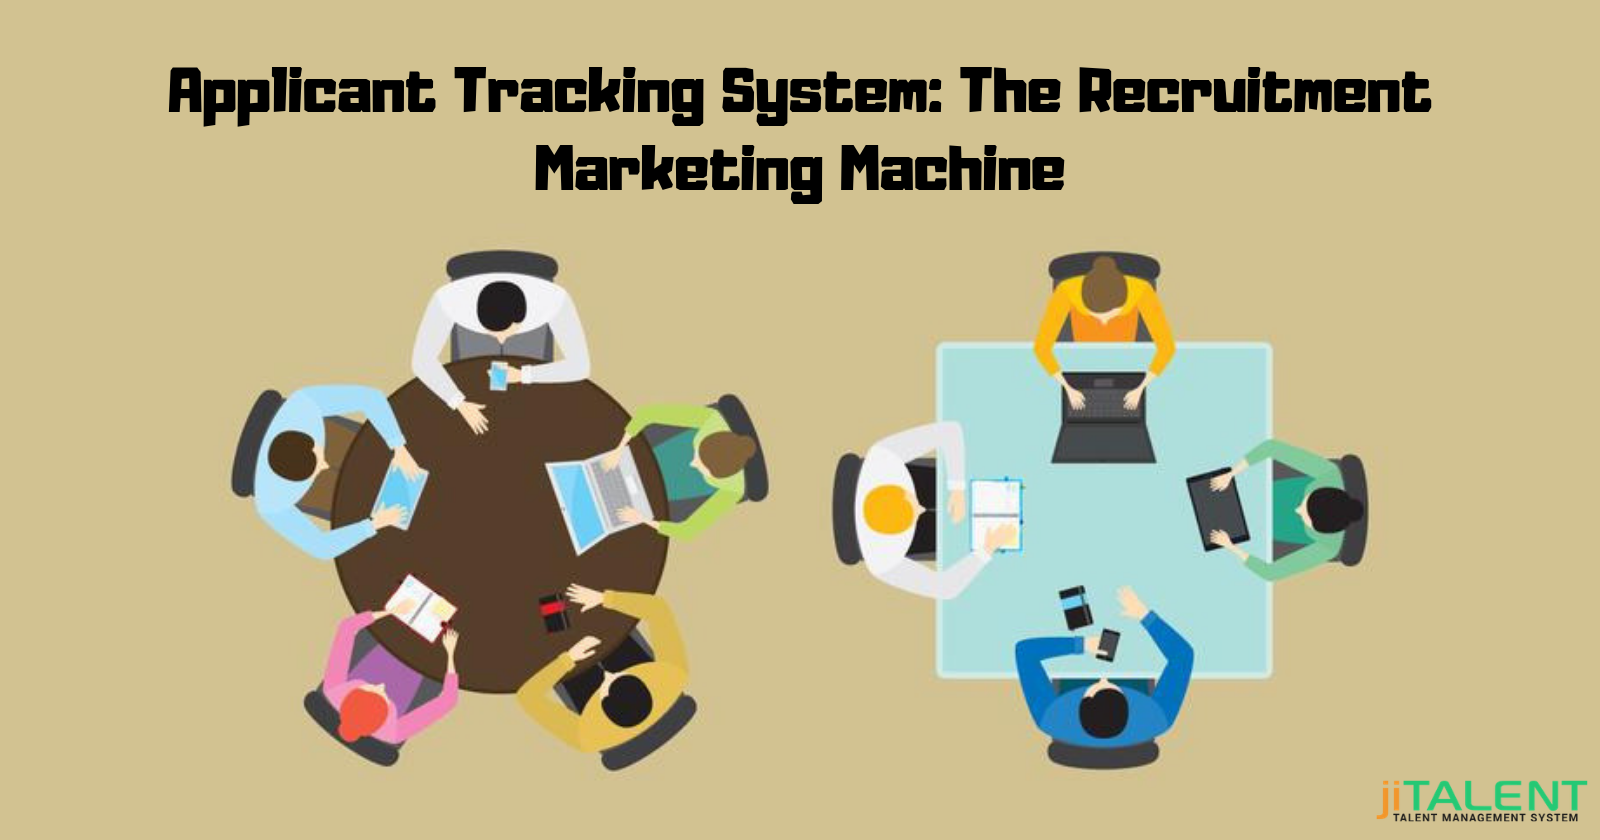 Applicant Tracking System: The Recruitment Marketing Machine